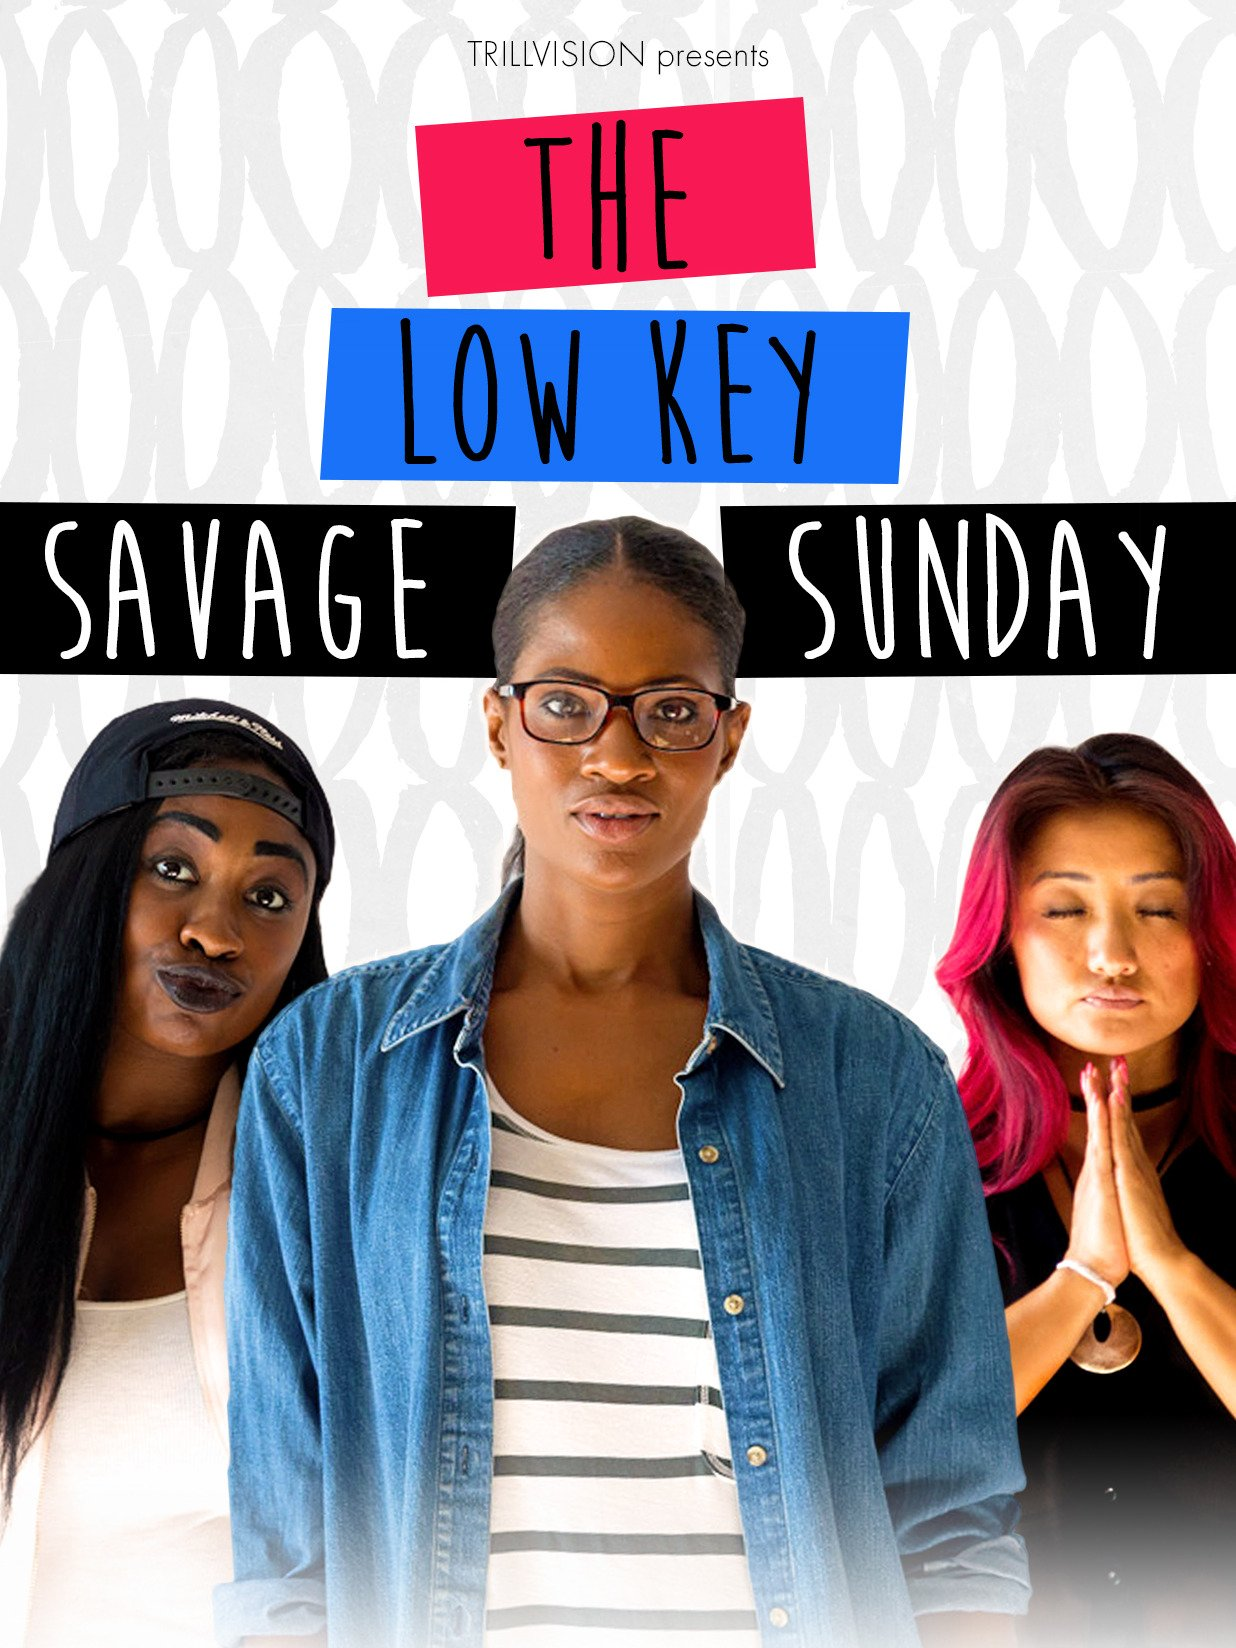 The Low Key Savage Sunday